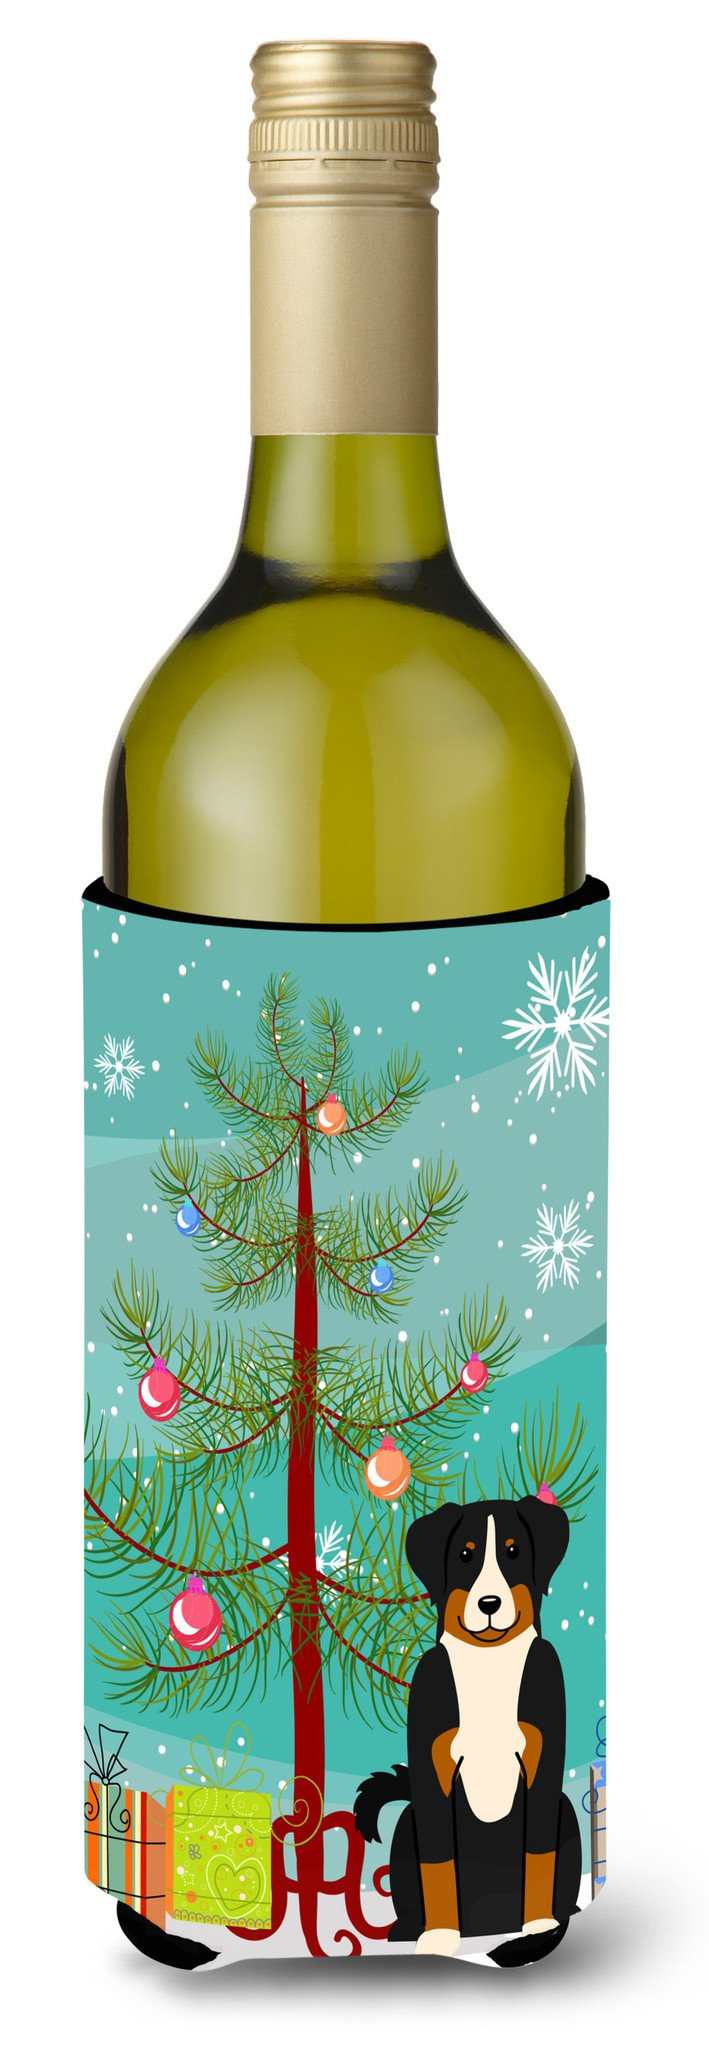 Merry Christmas Tree Appenzeller Sennenhund Wine Bottle Beverge Insulator Hugger BB4168LITERK by Caroline's Treasures